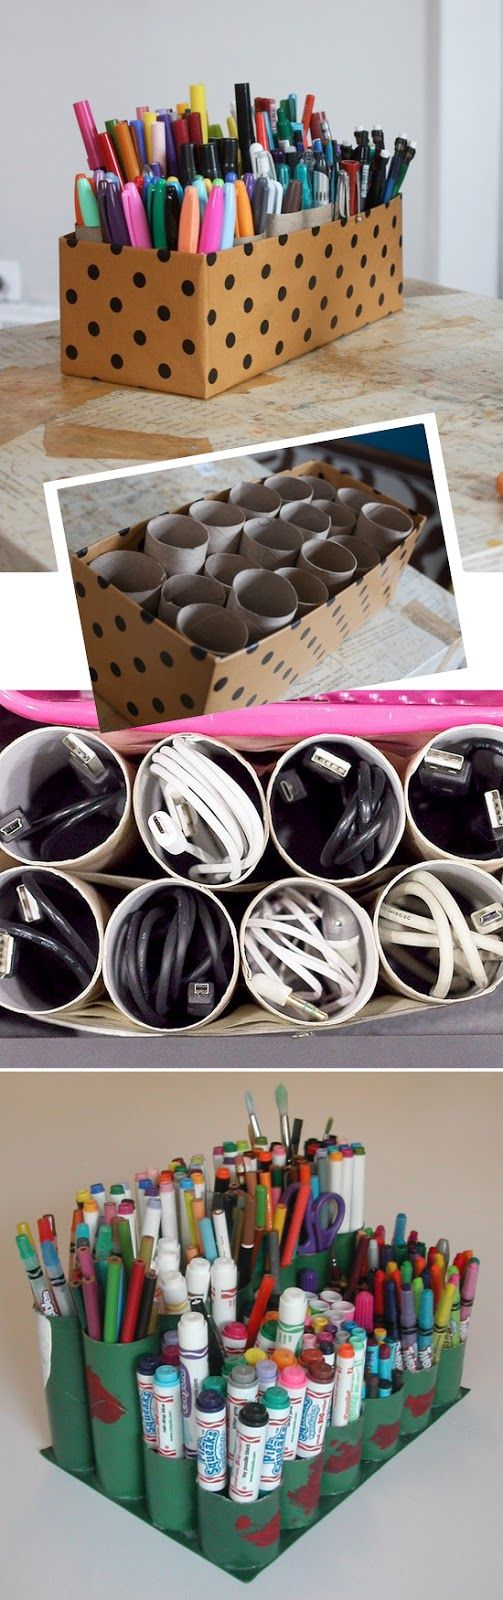 Toilet Paper Roll Storage Ideas | Crafts and DIY Community                                                                                                                                                      Plus